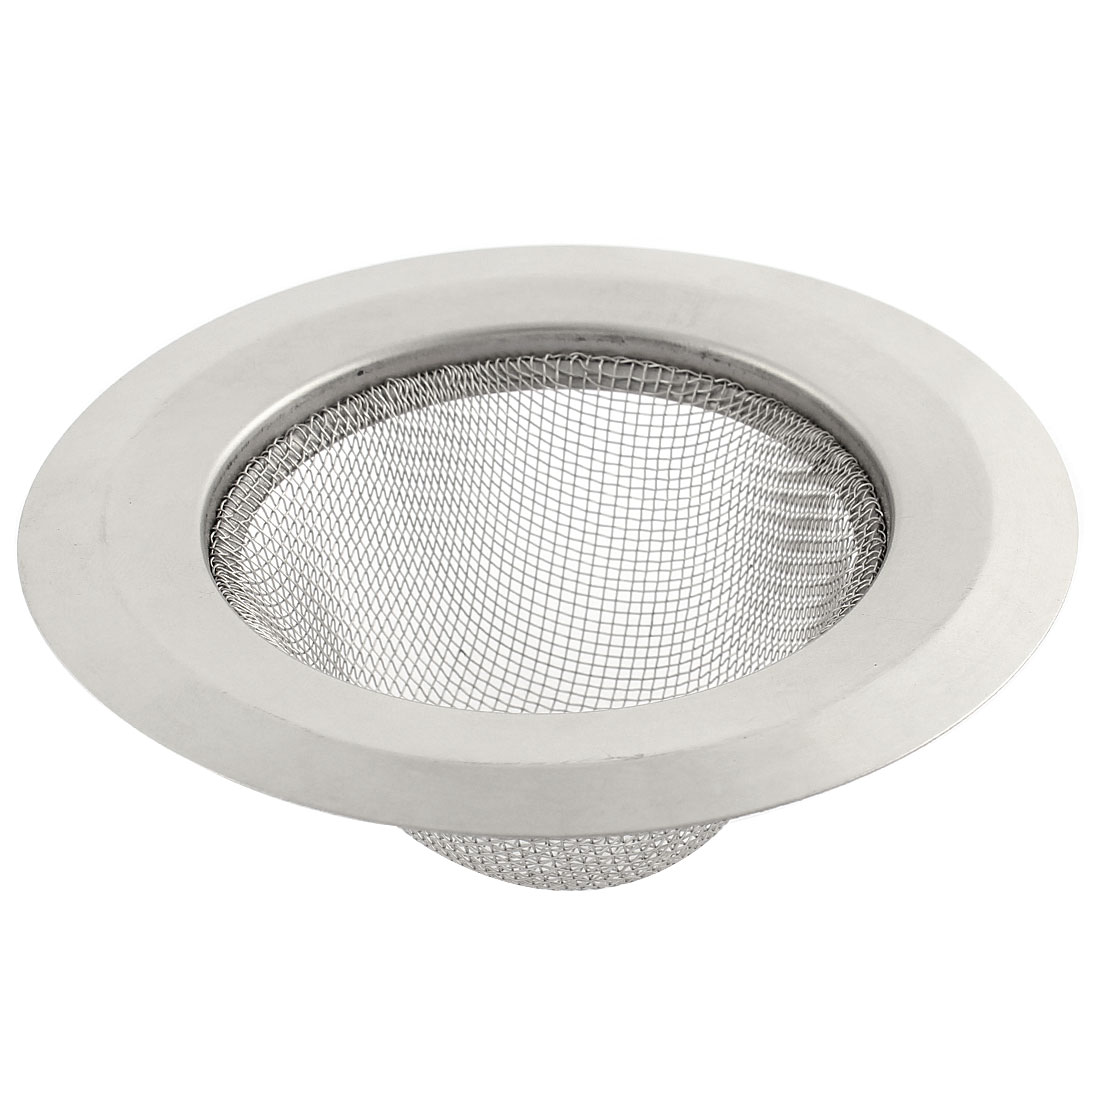 Home Kitchen Basin Filter Mesh Sink Strainers 4.4 Inch Outer Dia 2.8 Inch Inner Dia